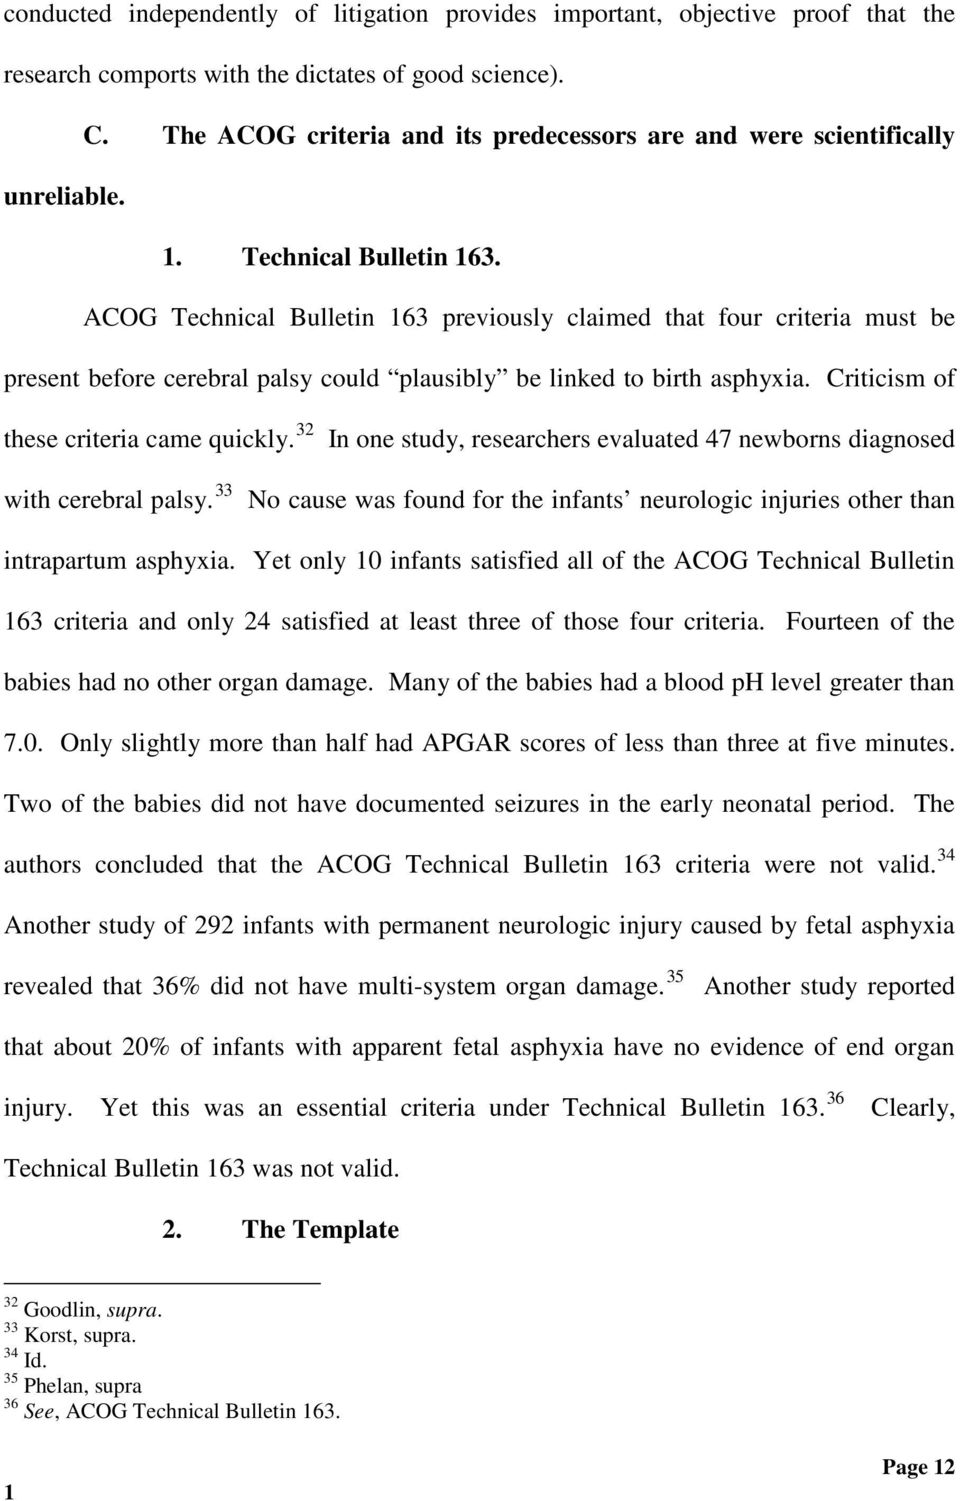 ACOG Technical Bulletin 63 previously claimed that four criteria must be present before cerebral palsy could plausibly be linked to birth asphyxia. Criticism of these criteria came quickly.